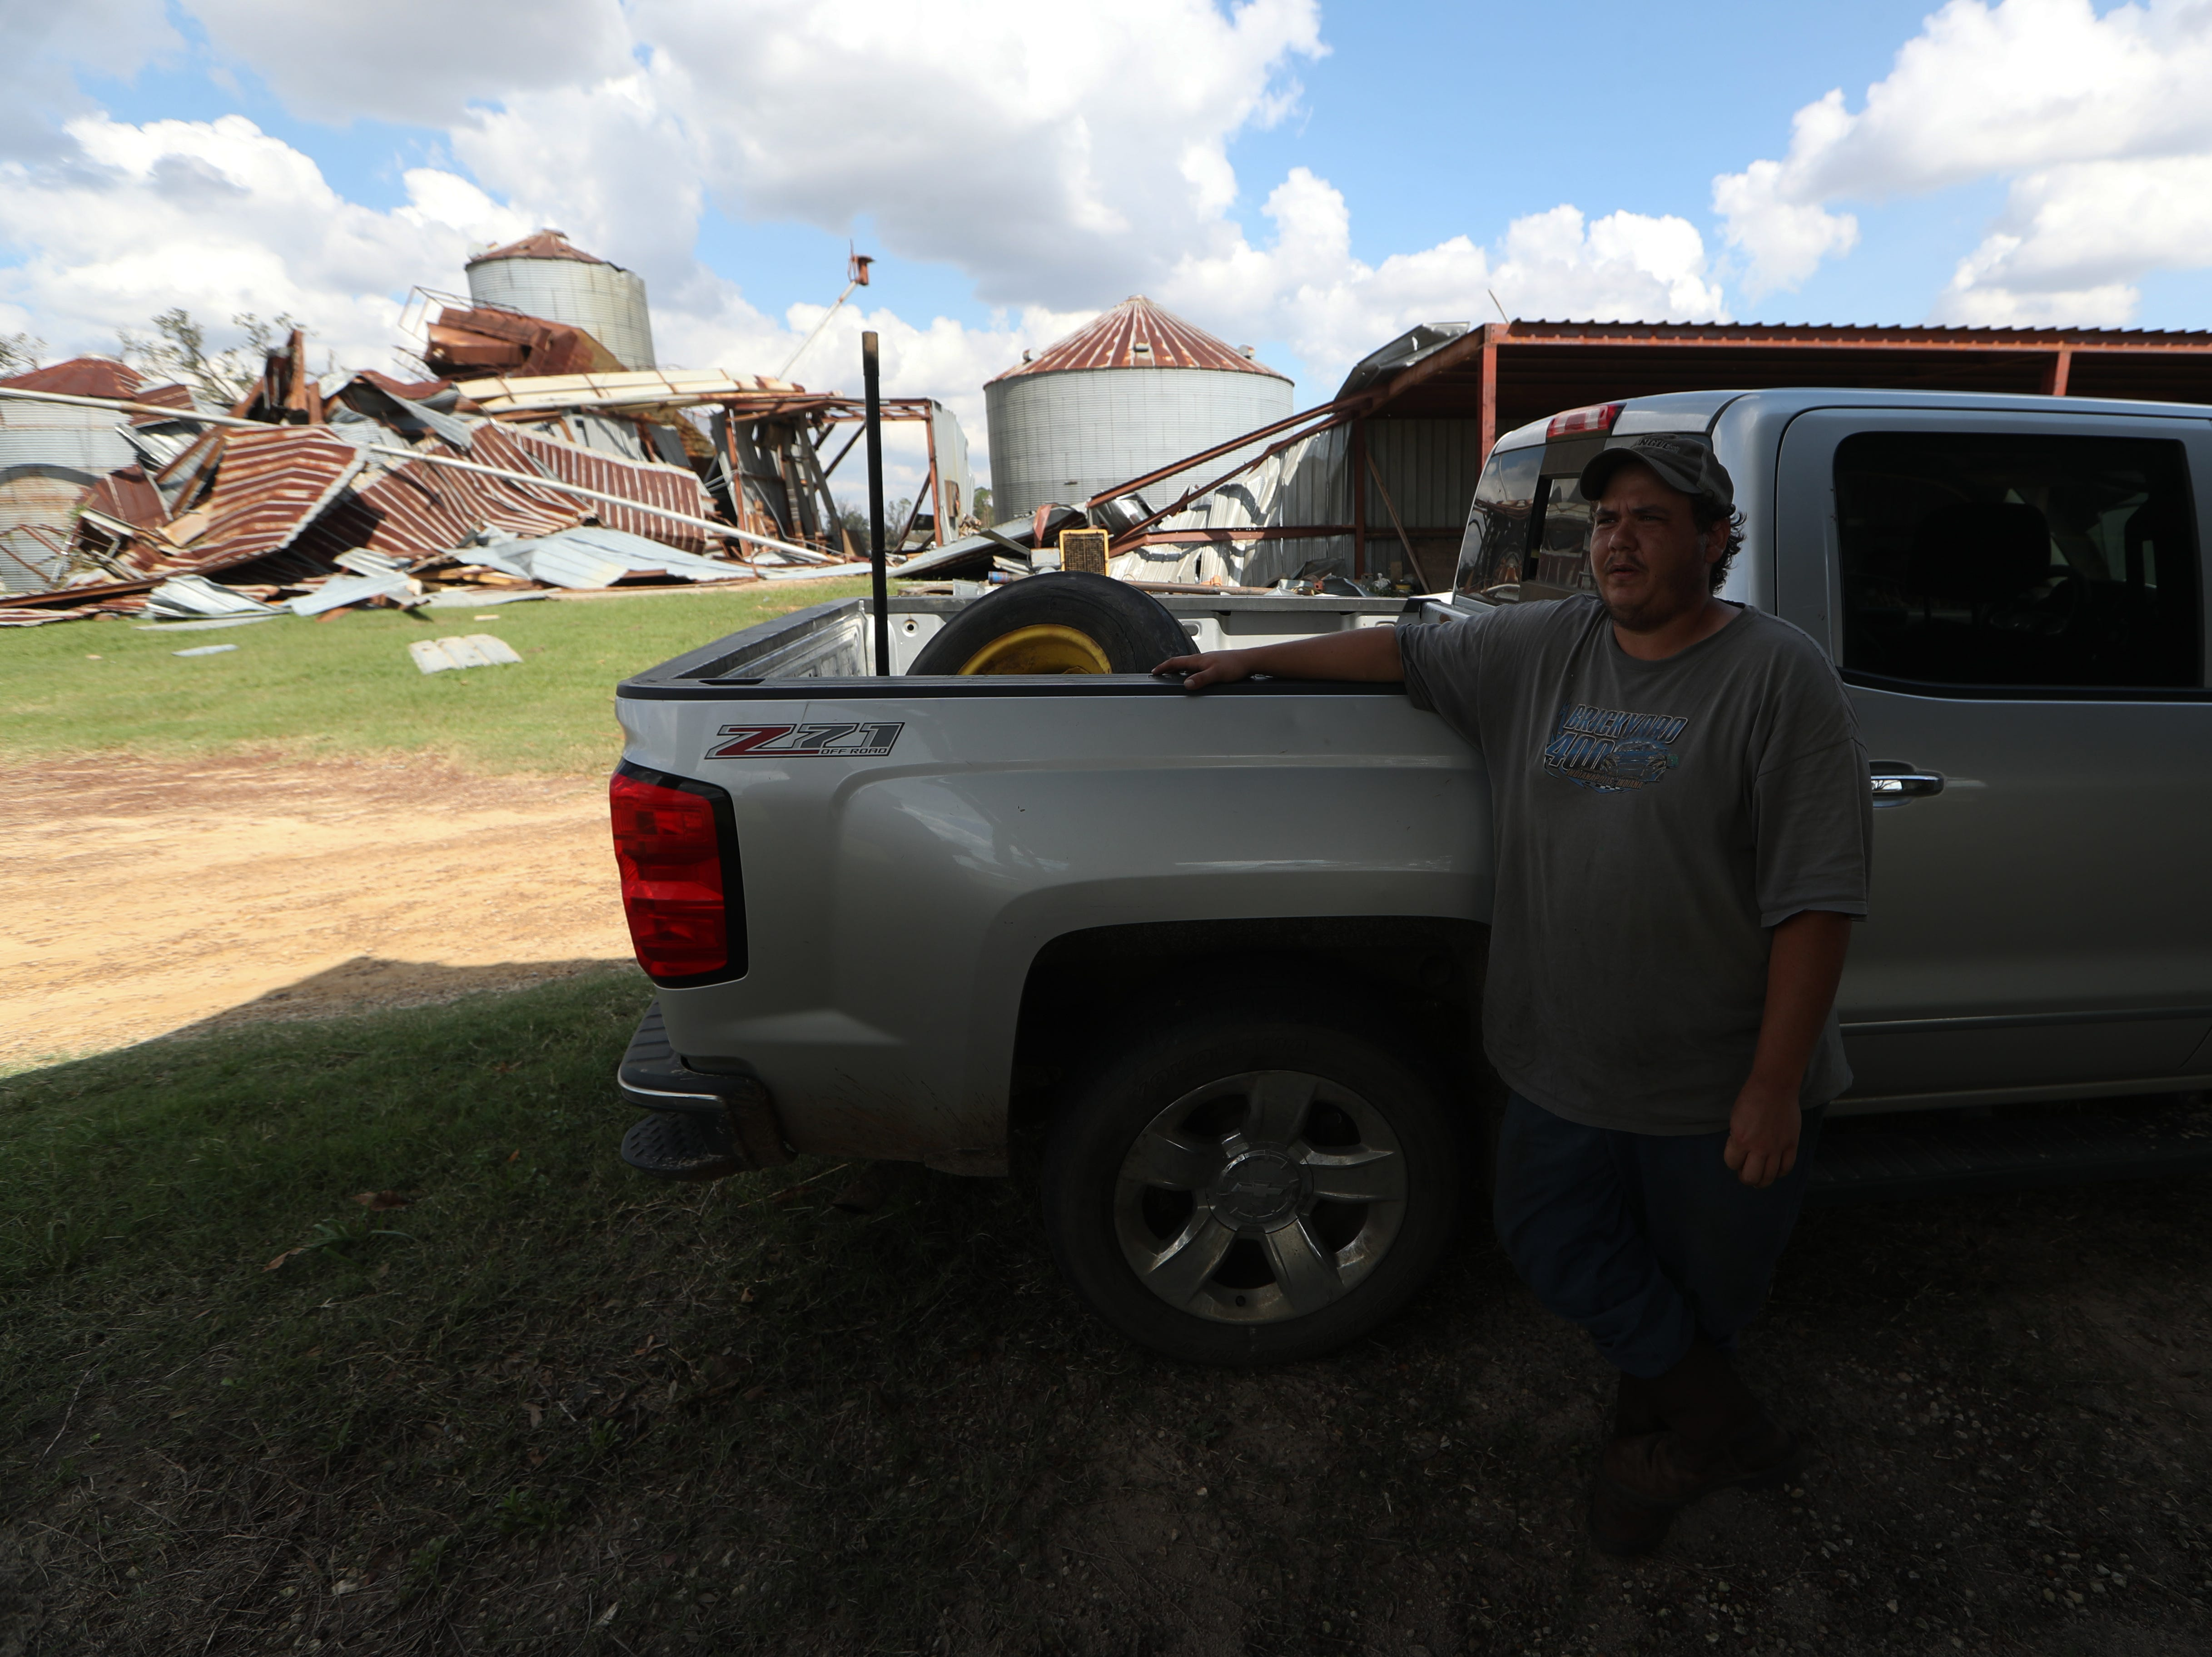 Ryan Sweat, Progressive Pecans supervisor, talks about the huge loss of the pecan crop just before harvest season because of Hurricane Michael Wednesday, Oct. 17, 2018 at Seldom Rest Farm in Donalsonville, Ga.